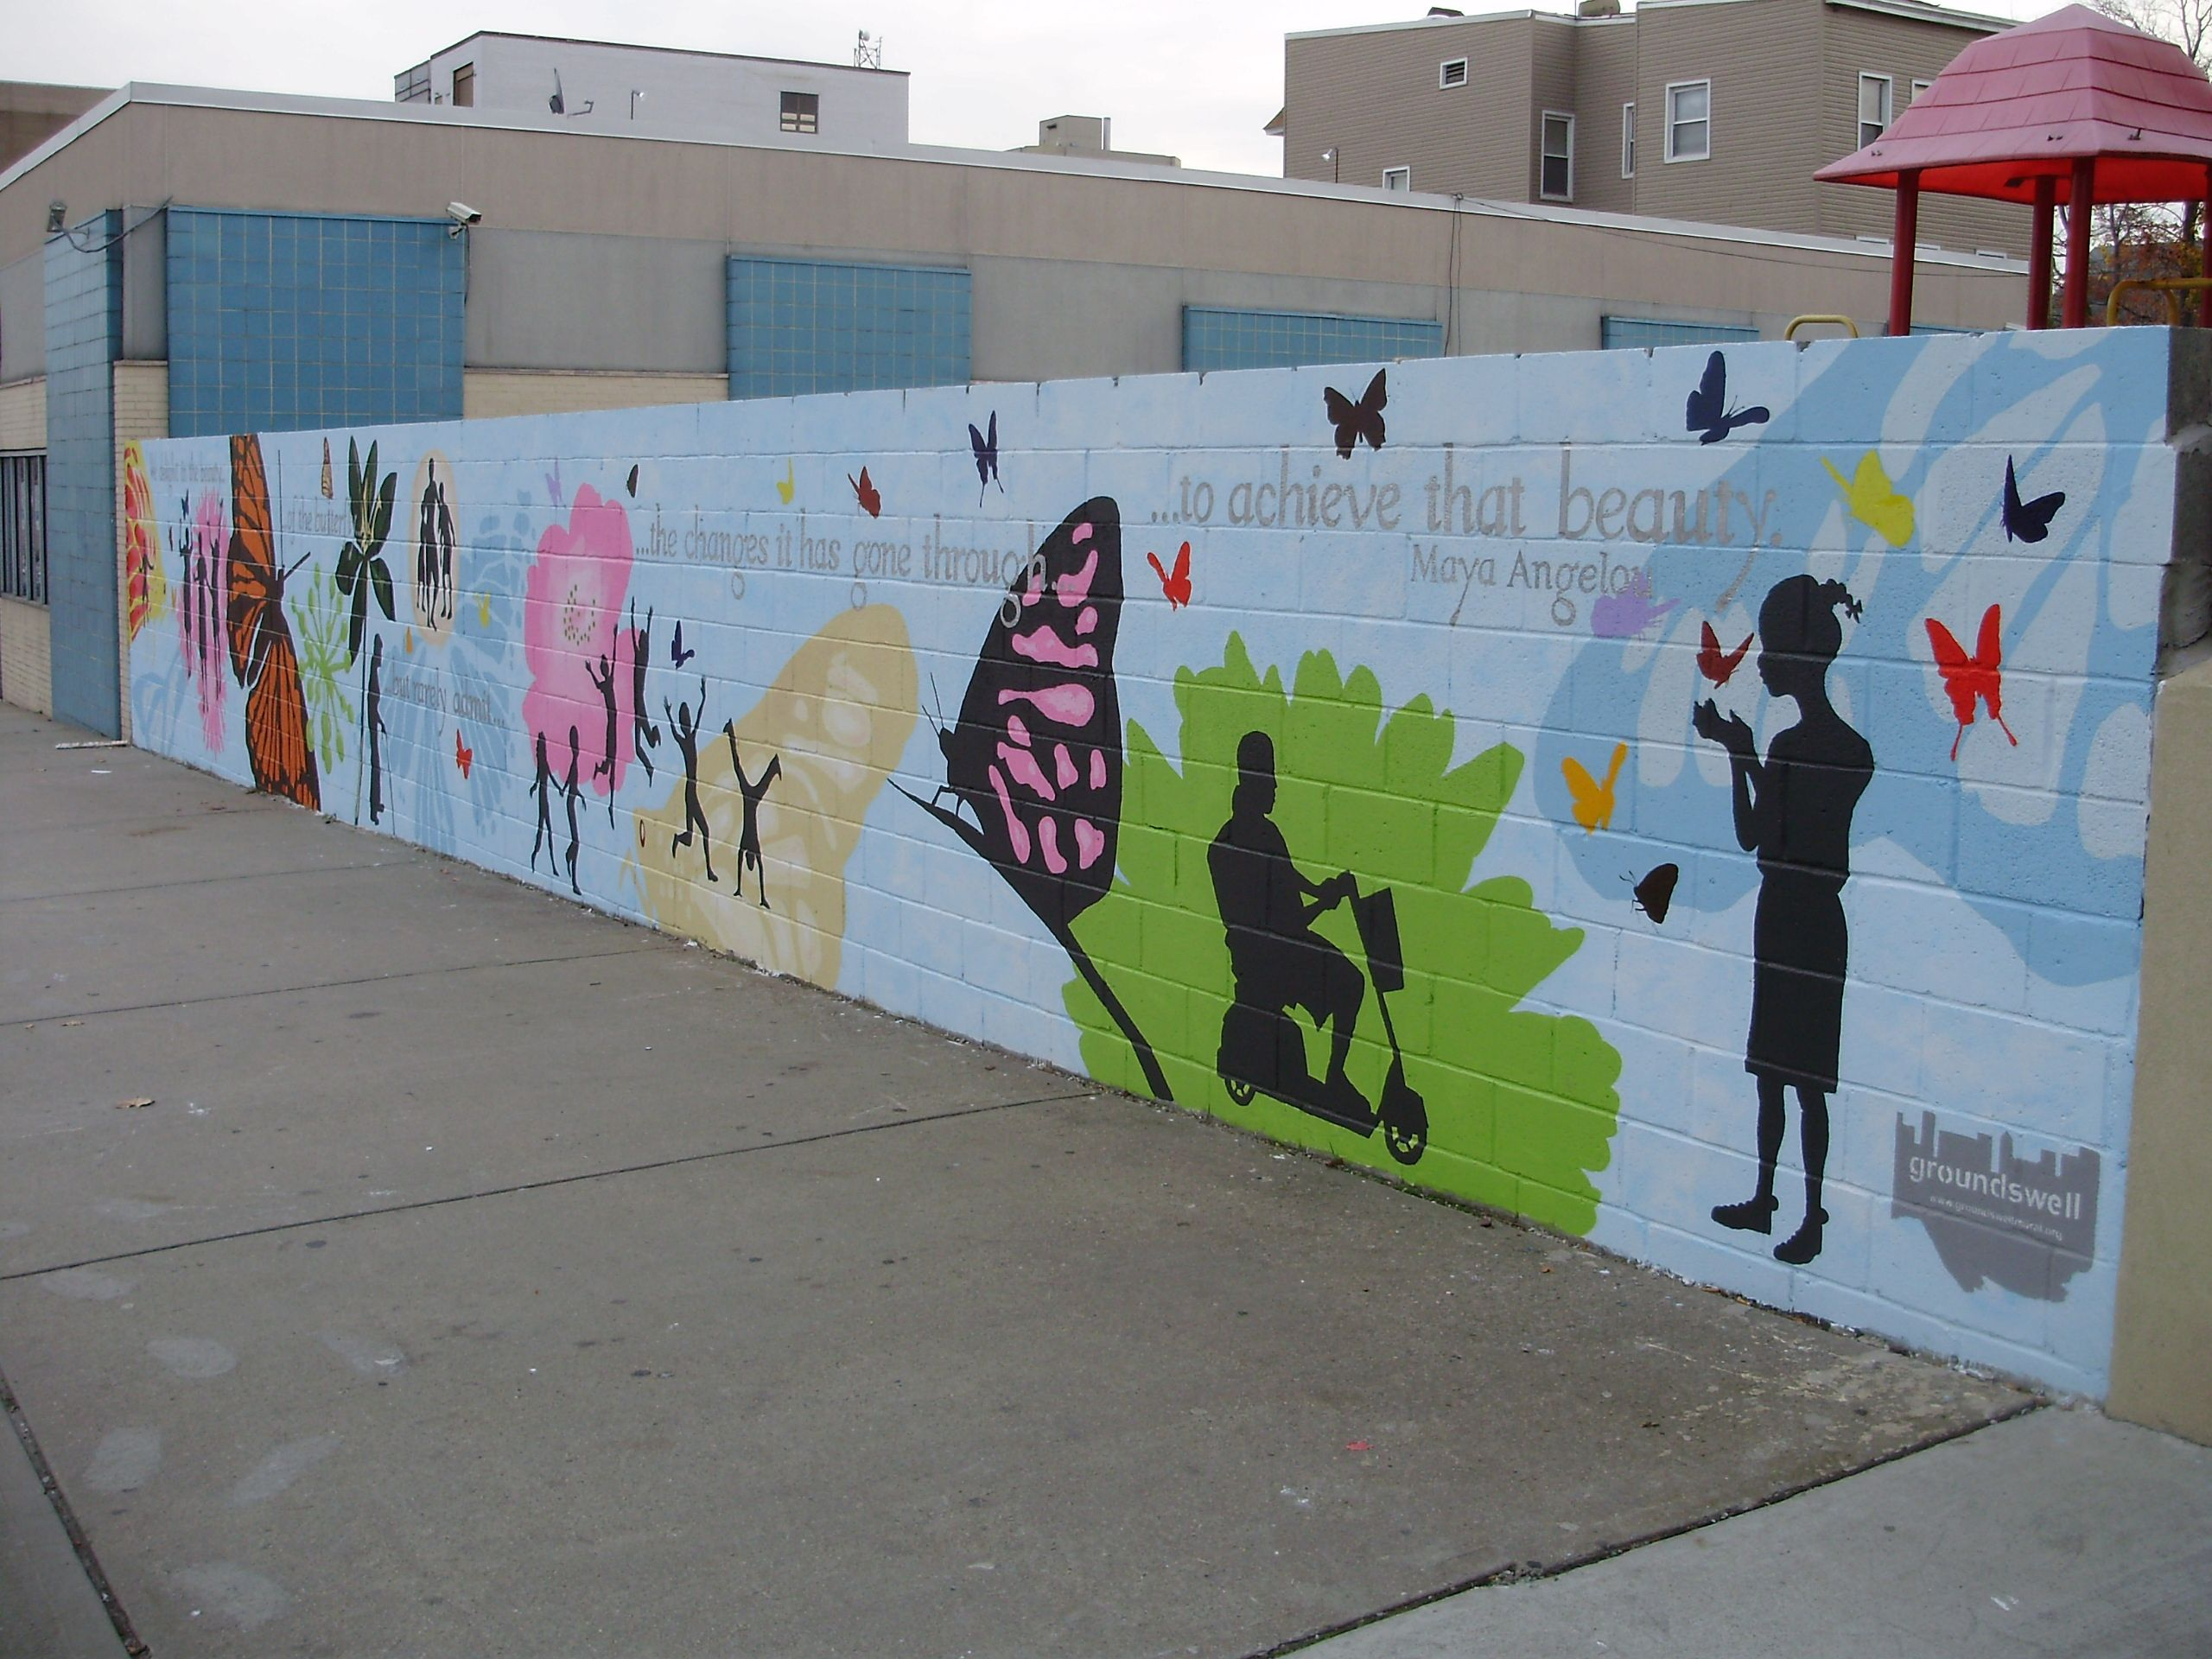 Butterfly mural city murals and youth program summer jobs